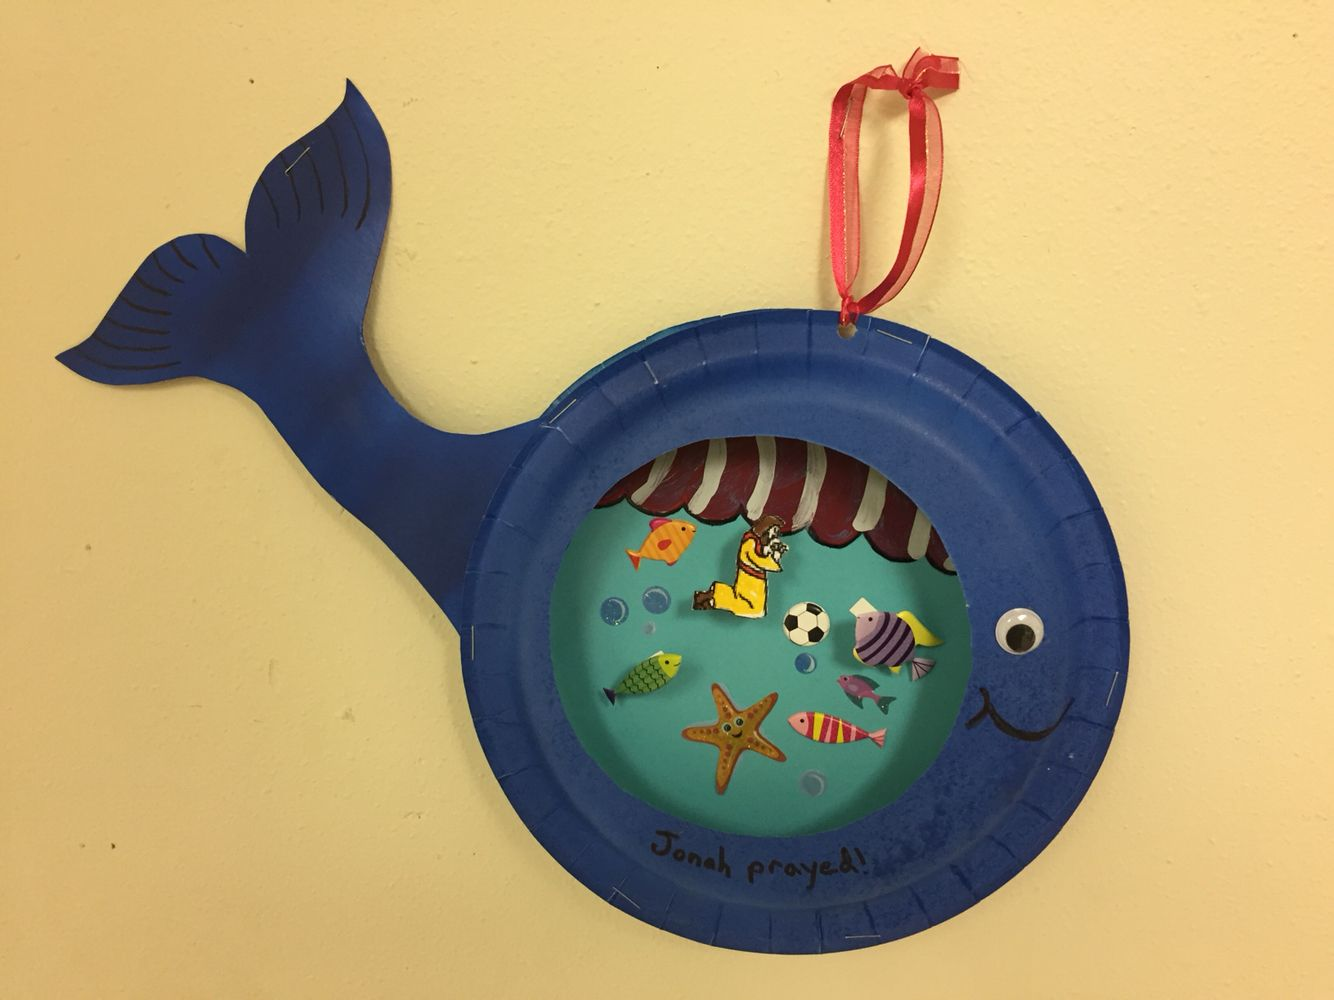 Great Sunday School Craft Idea For Little Kids Teach Jonah And The Whale And Use Paper Plates